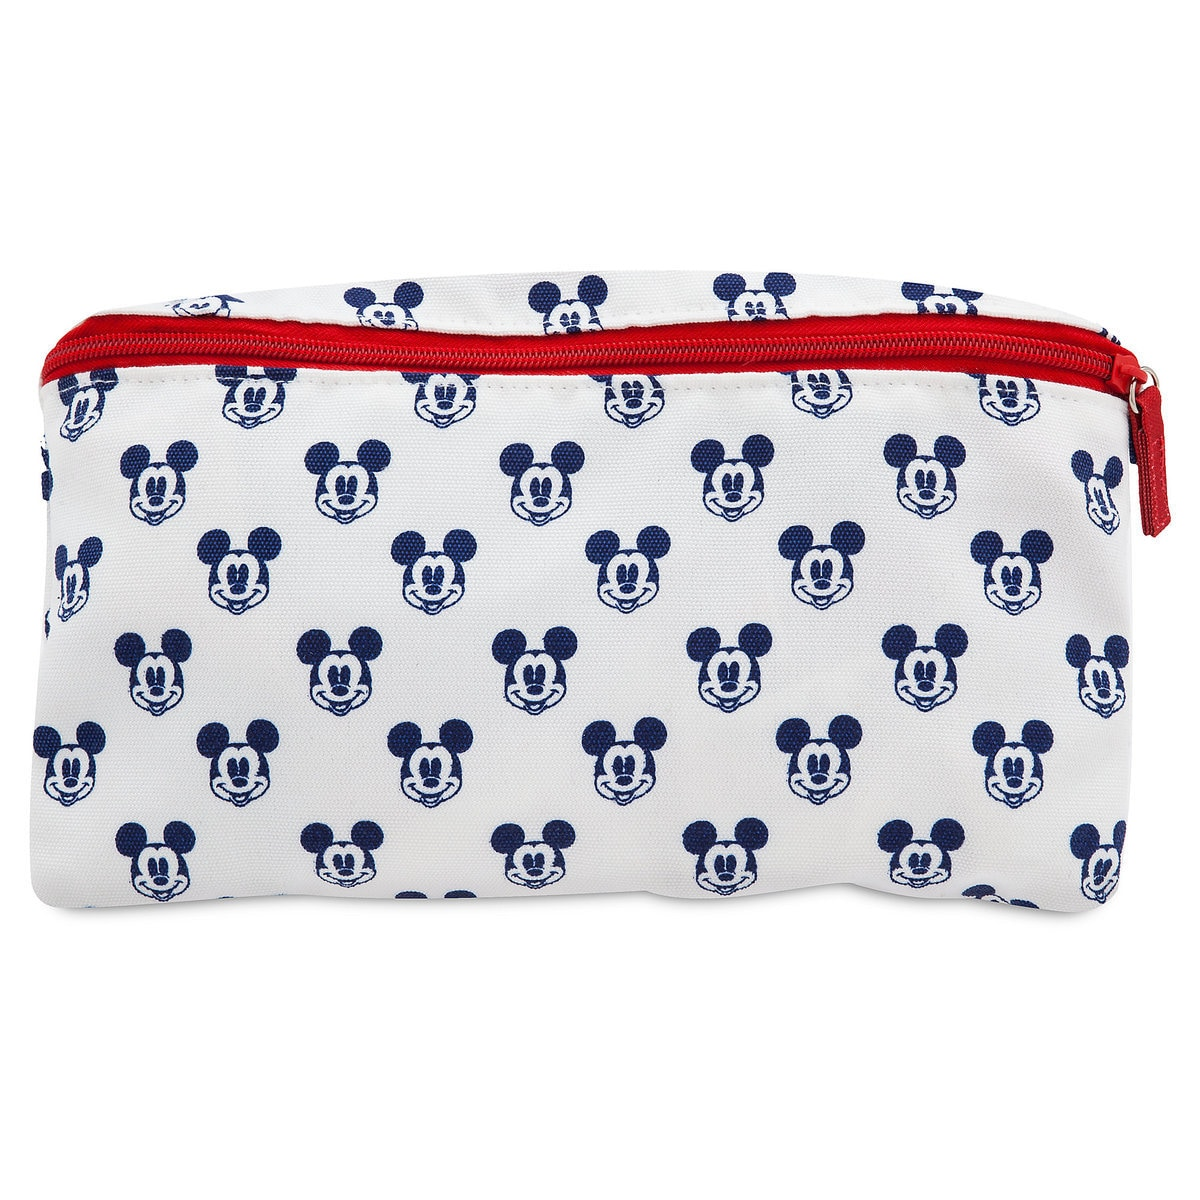 20333290670 Product Image of Mickey Mouse Americana Foldable Tote Bag   2